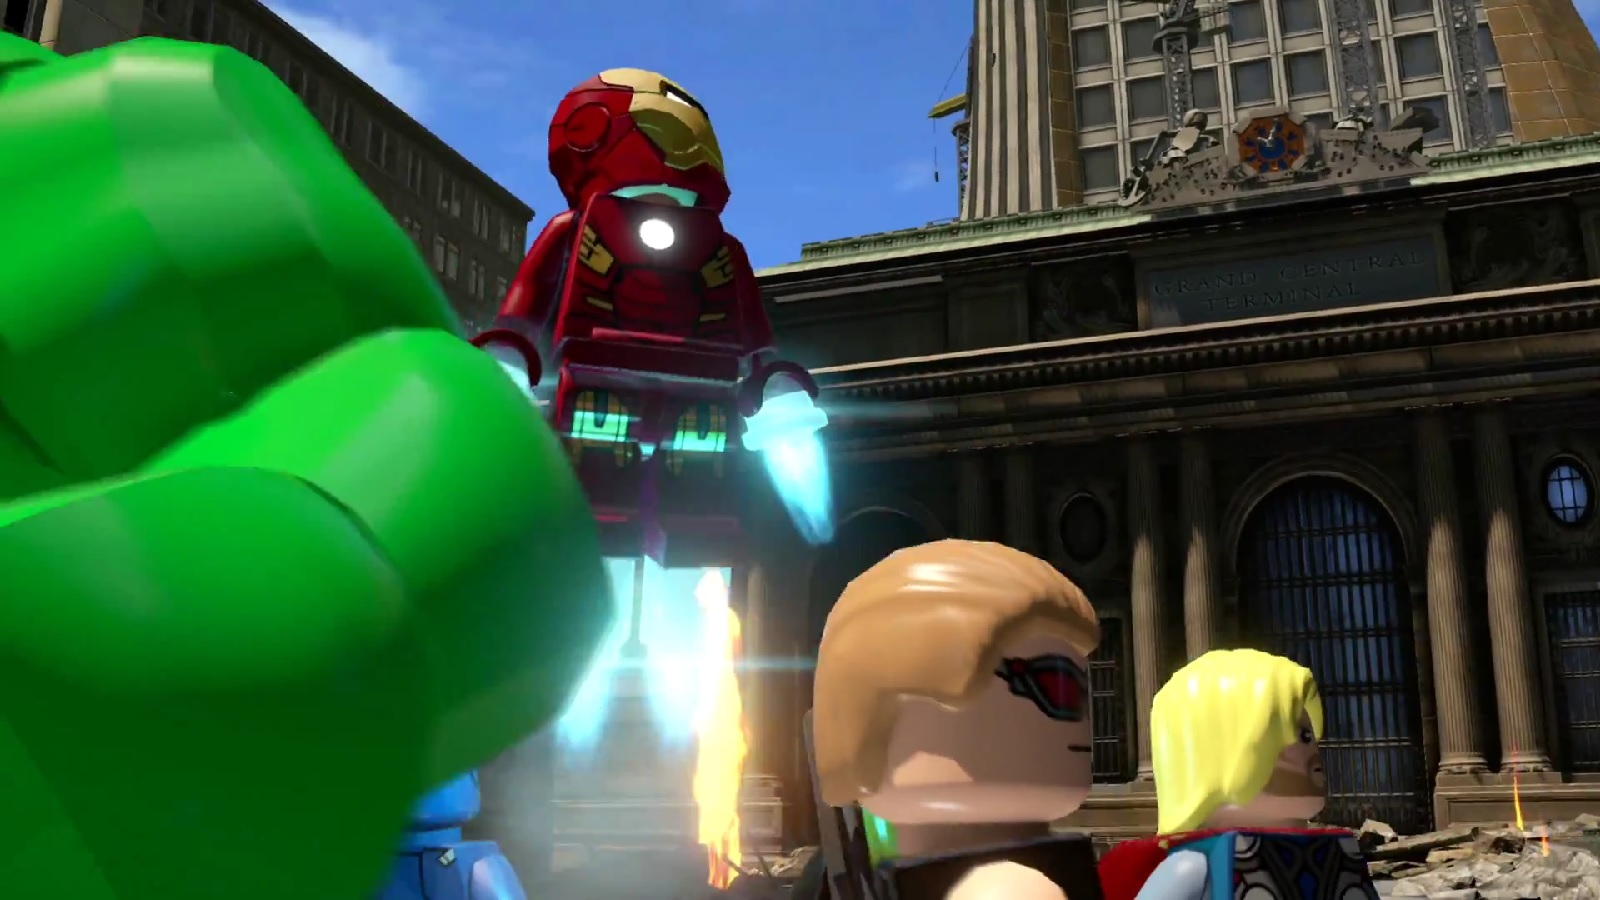 Avengers 1 000 000 Bc Marvel: LEGO Marvel Super Heroes Has Sold Over One Million Copies